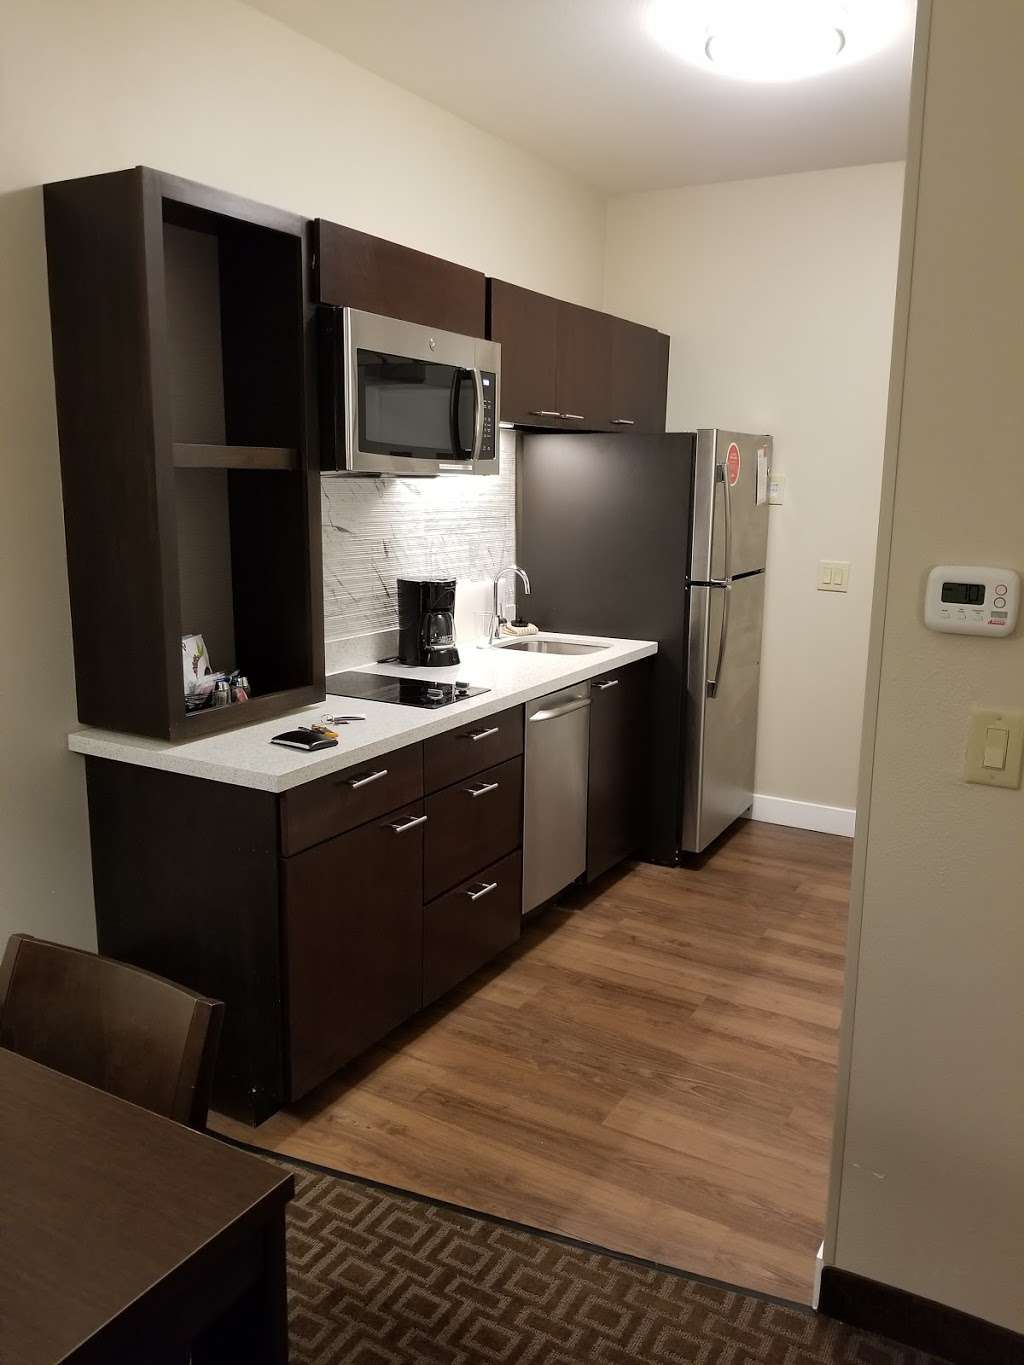 TownePlace Suites by Marriott Houston Baytown - lodging  | Photo 3 of 10 | Address: 7238 Garth Rd, Baytown, TX 77521, USA | Phone: (281) 421-0020